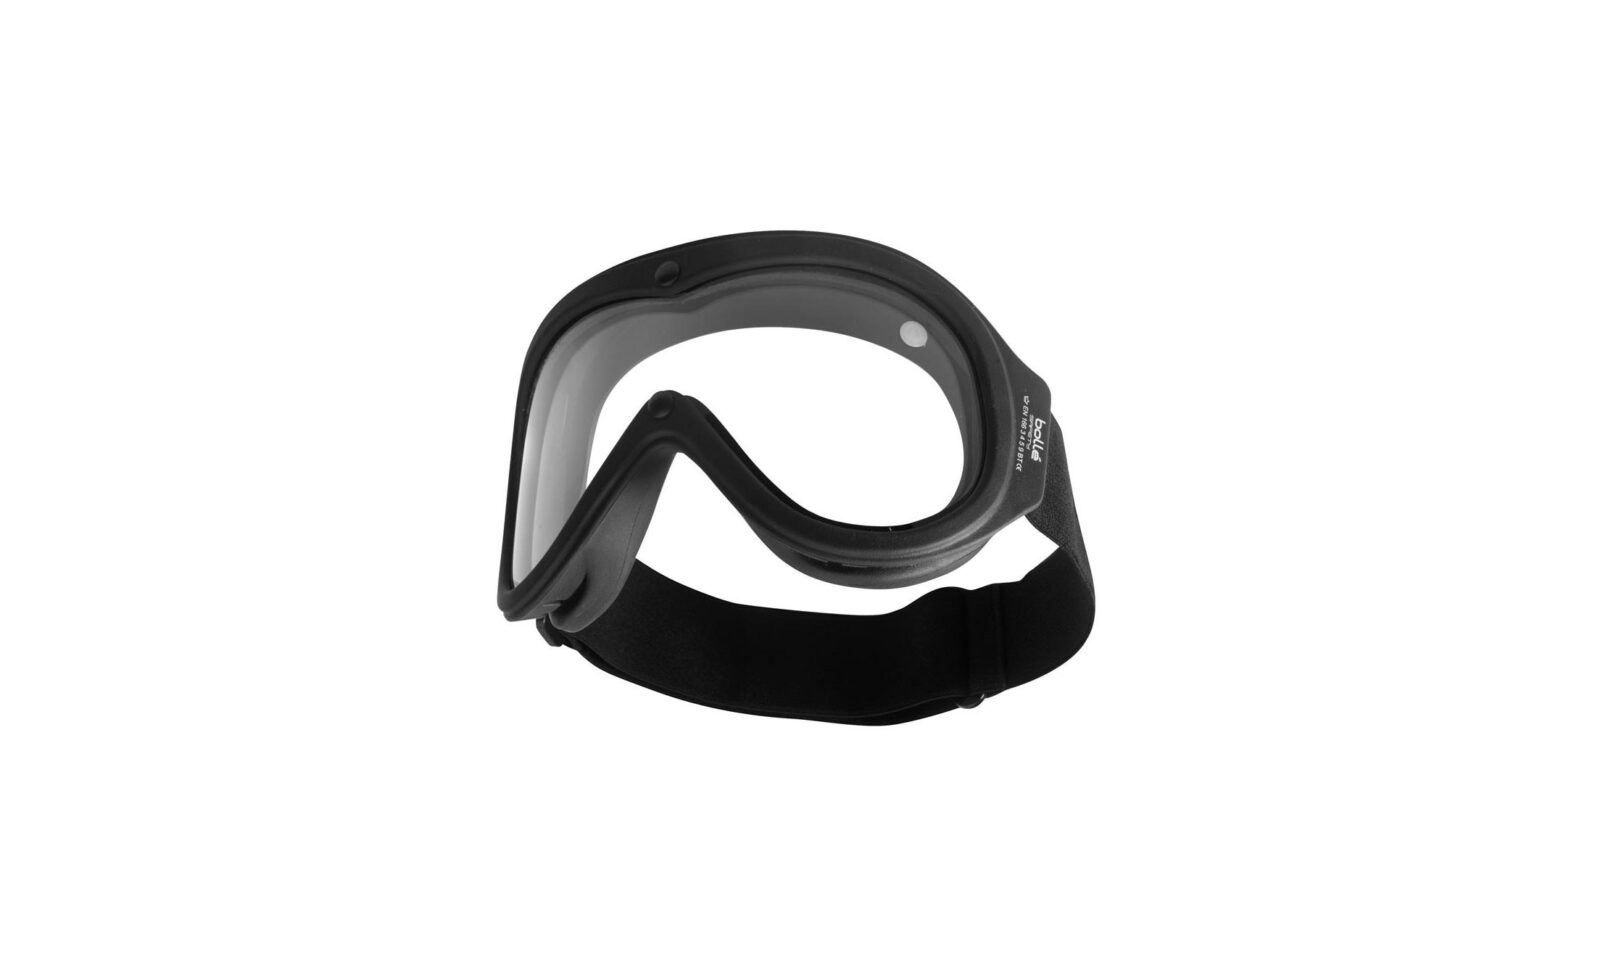 Bolle McQueen Motorcycle Goggles 1600x959 - Bolle McQueen Motorcycle Goggles